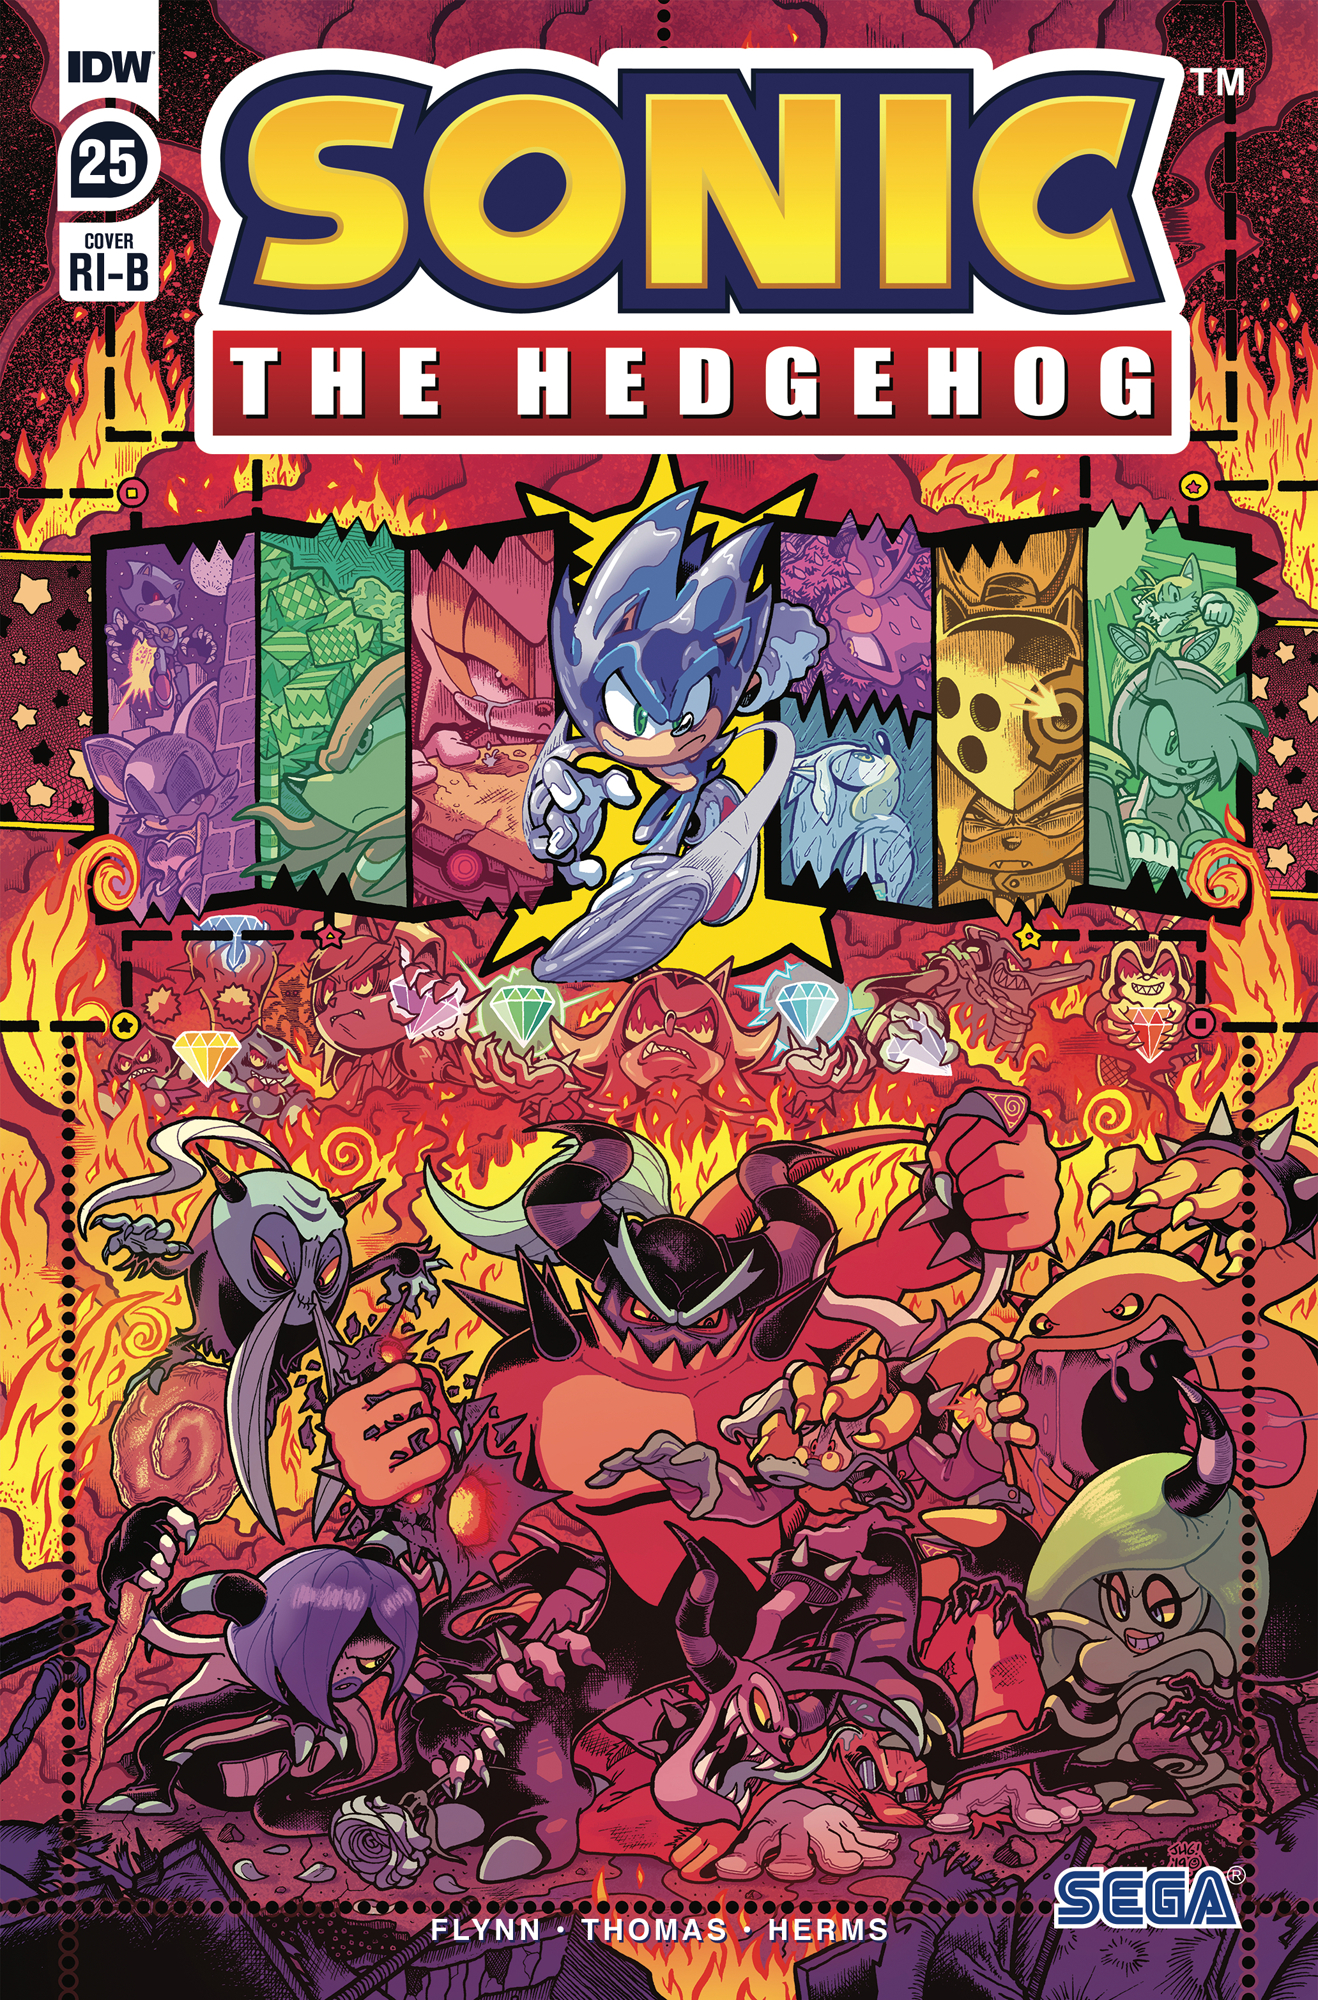 Idw Sonic The Hedgehog Issue 25 Sonic News Network Fandom